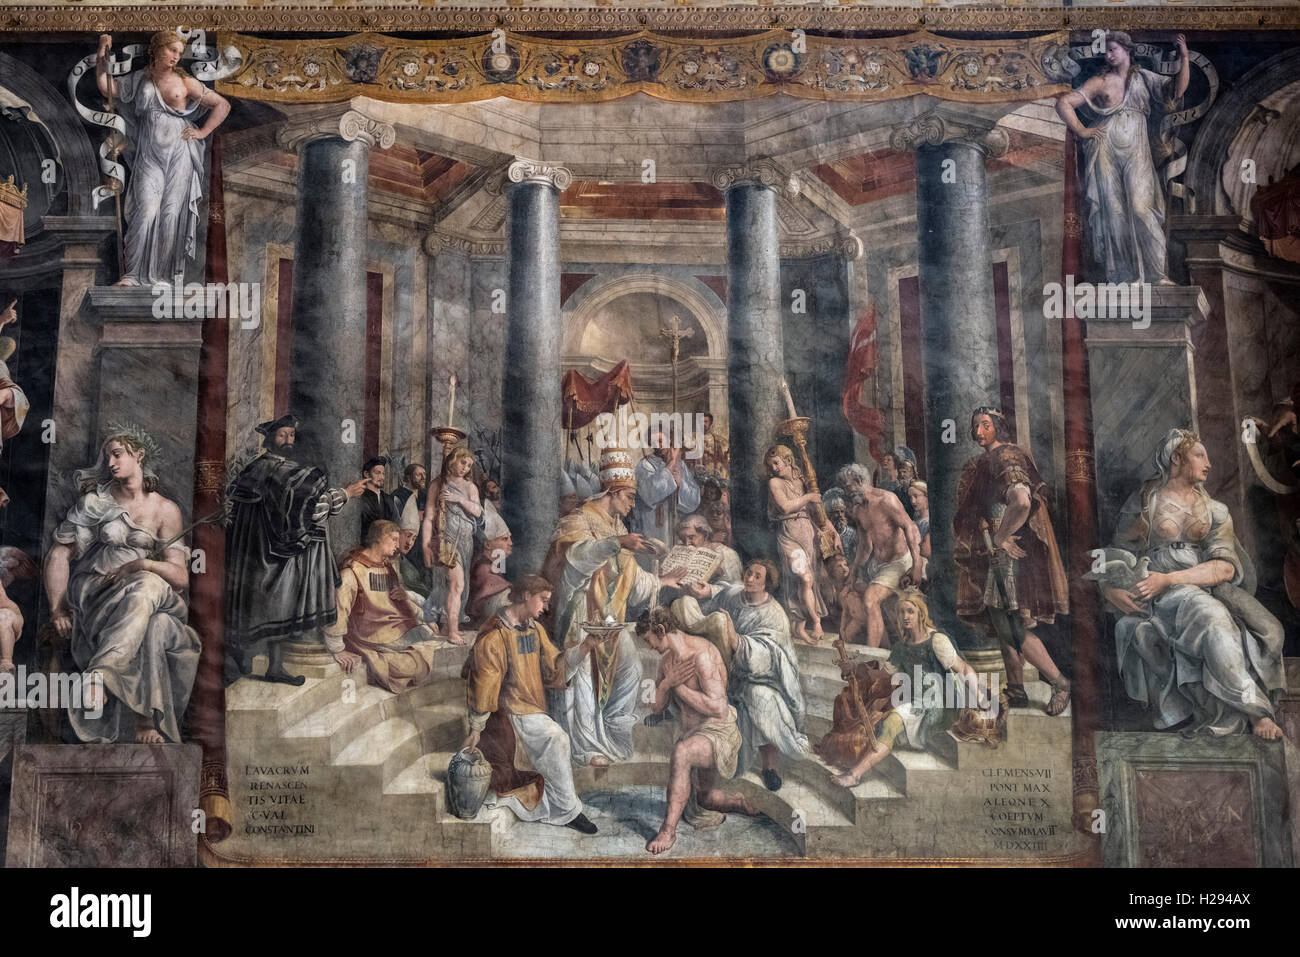 Rome. Italy. Fresco (1517-1524) depicting The Baptism of Constantine (detail), Hall of Constantine, Vatican Museums. - Stock Image